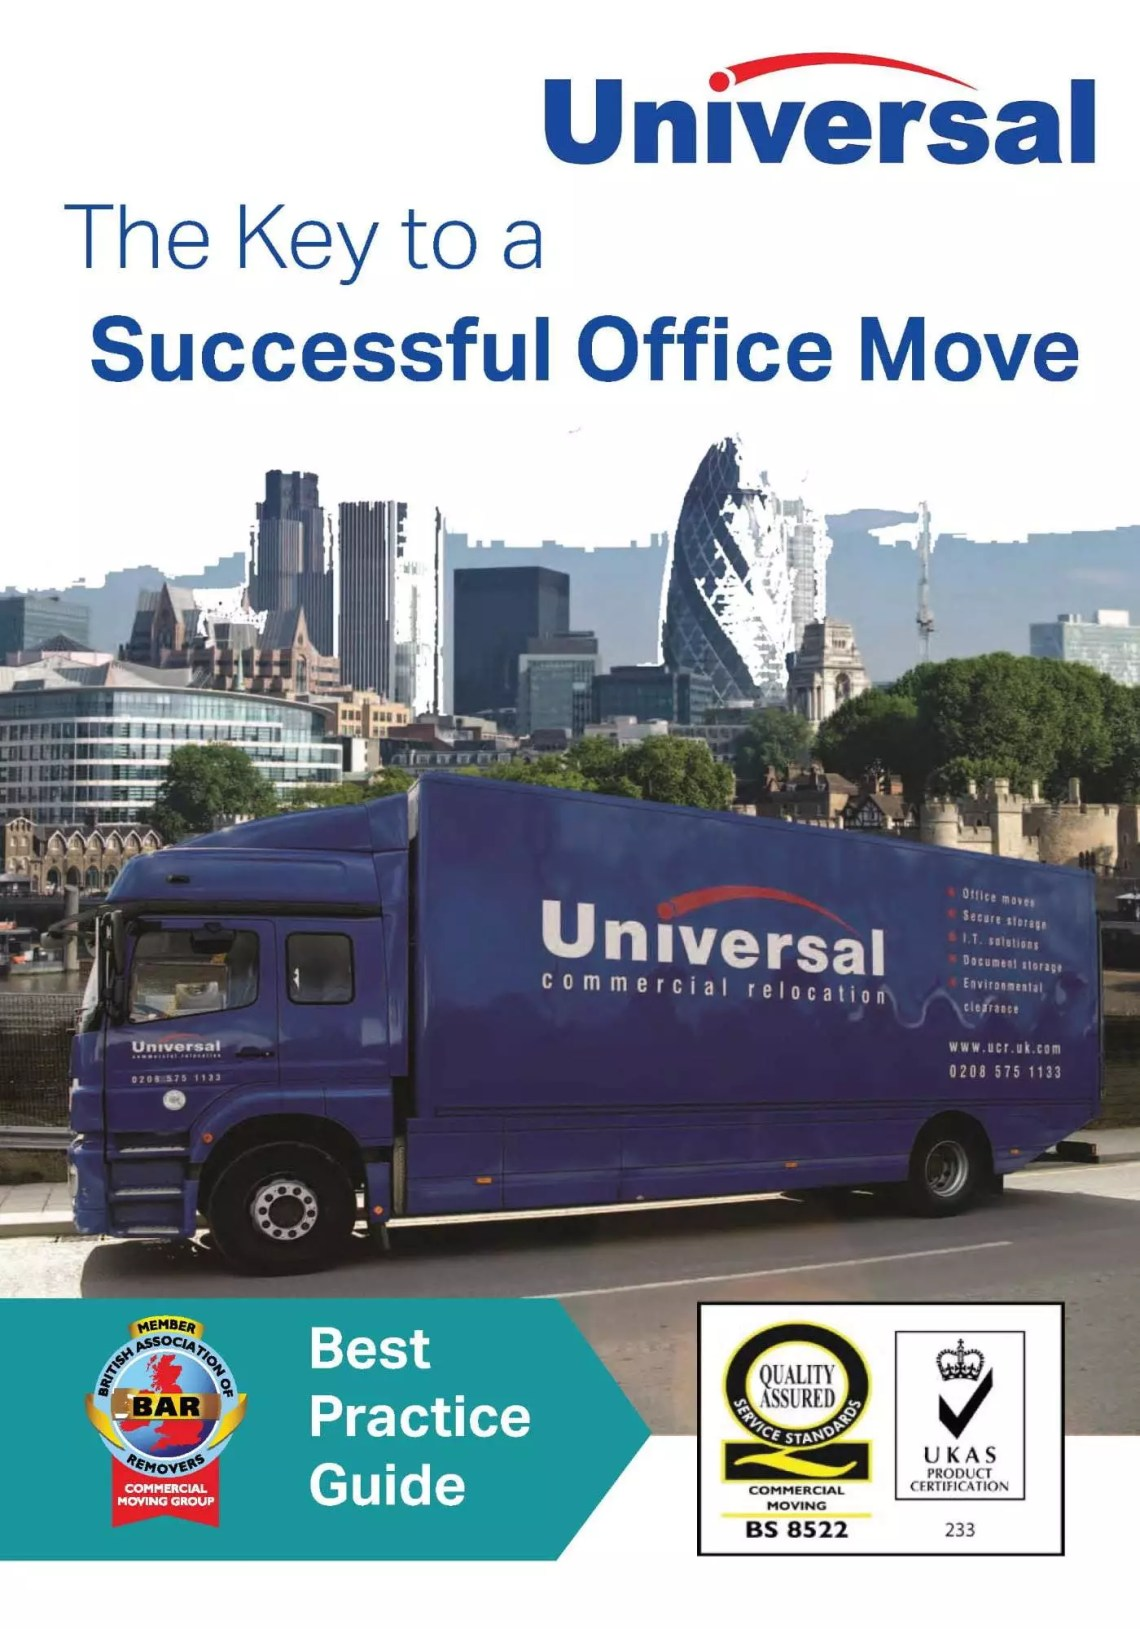 Universal Best Practice Guide for a successful office move